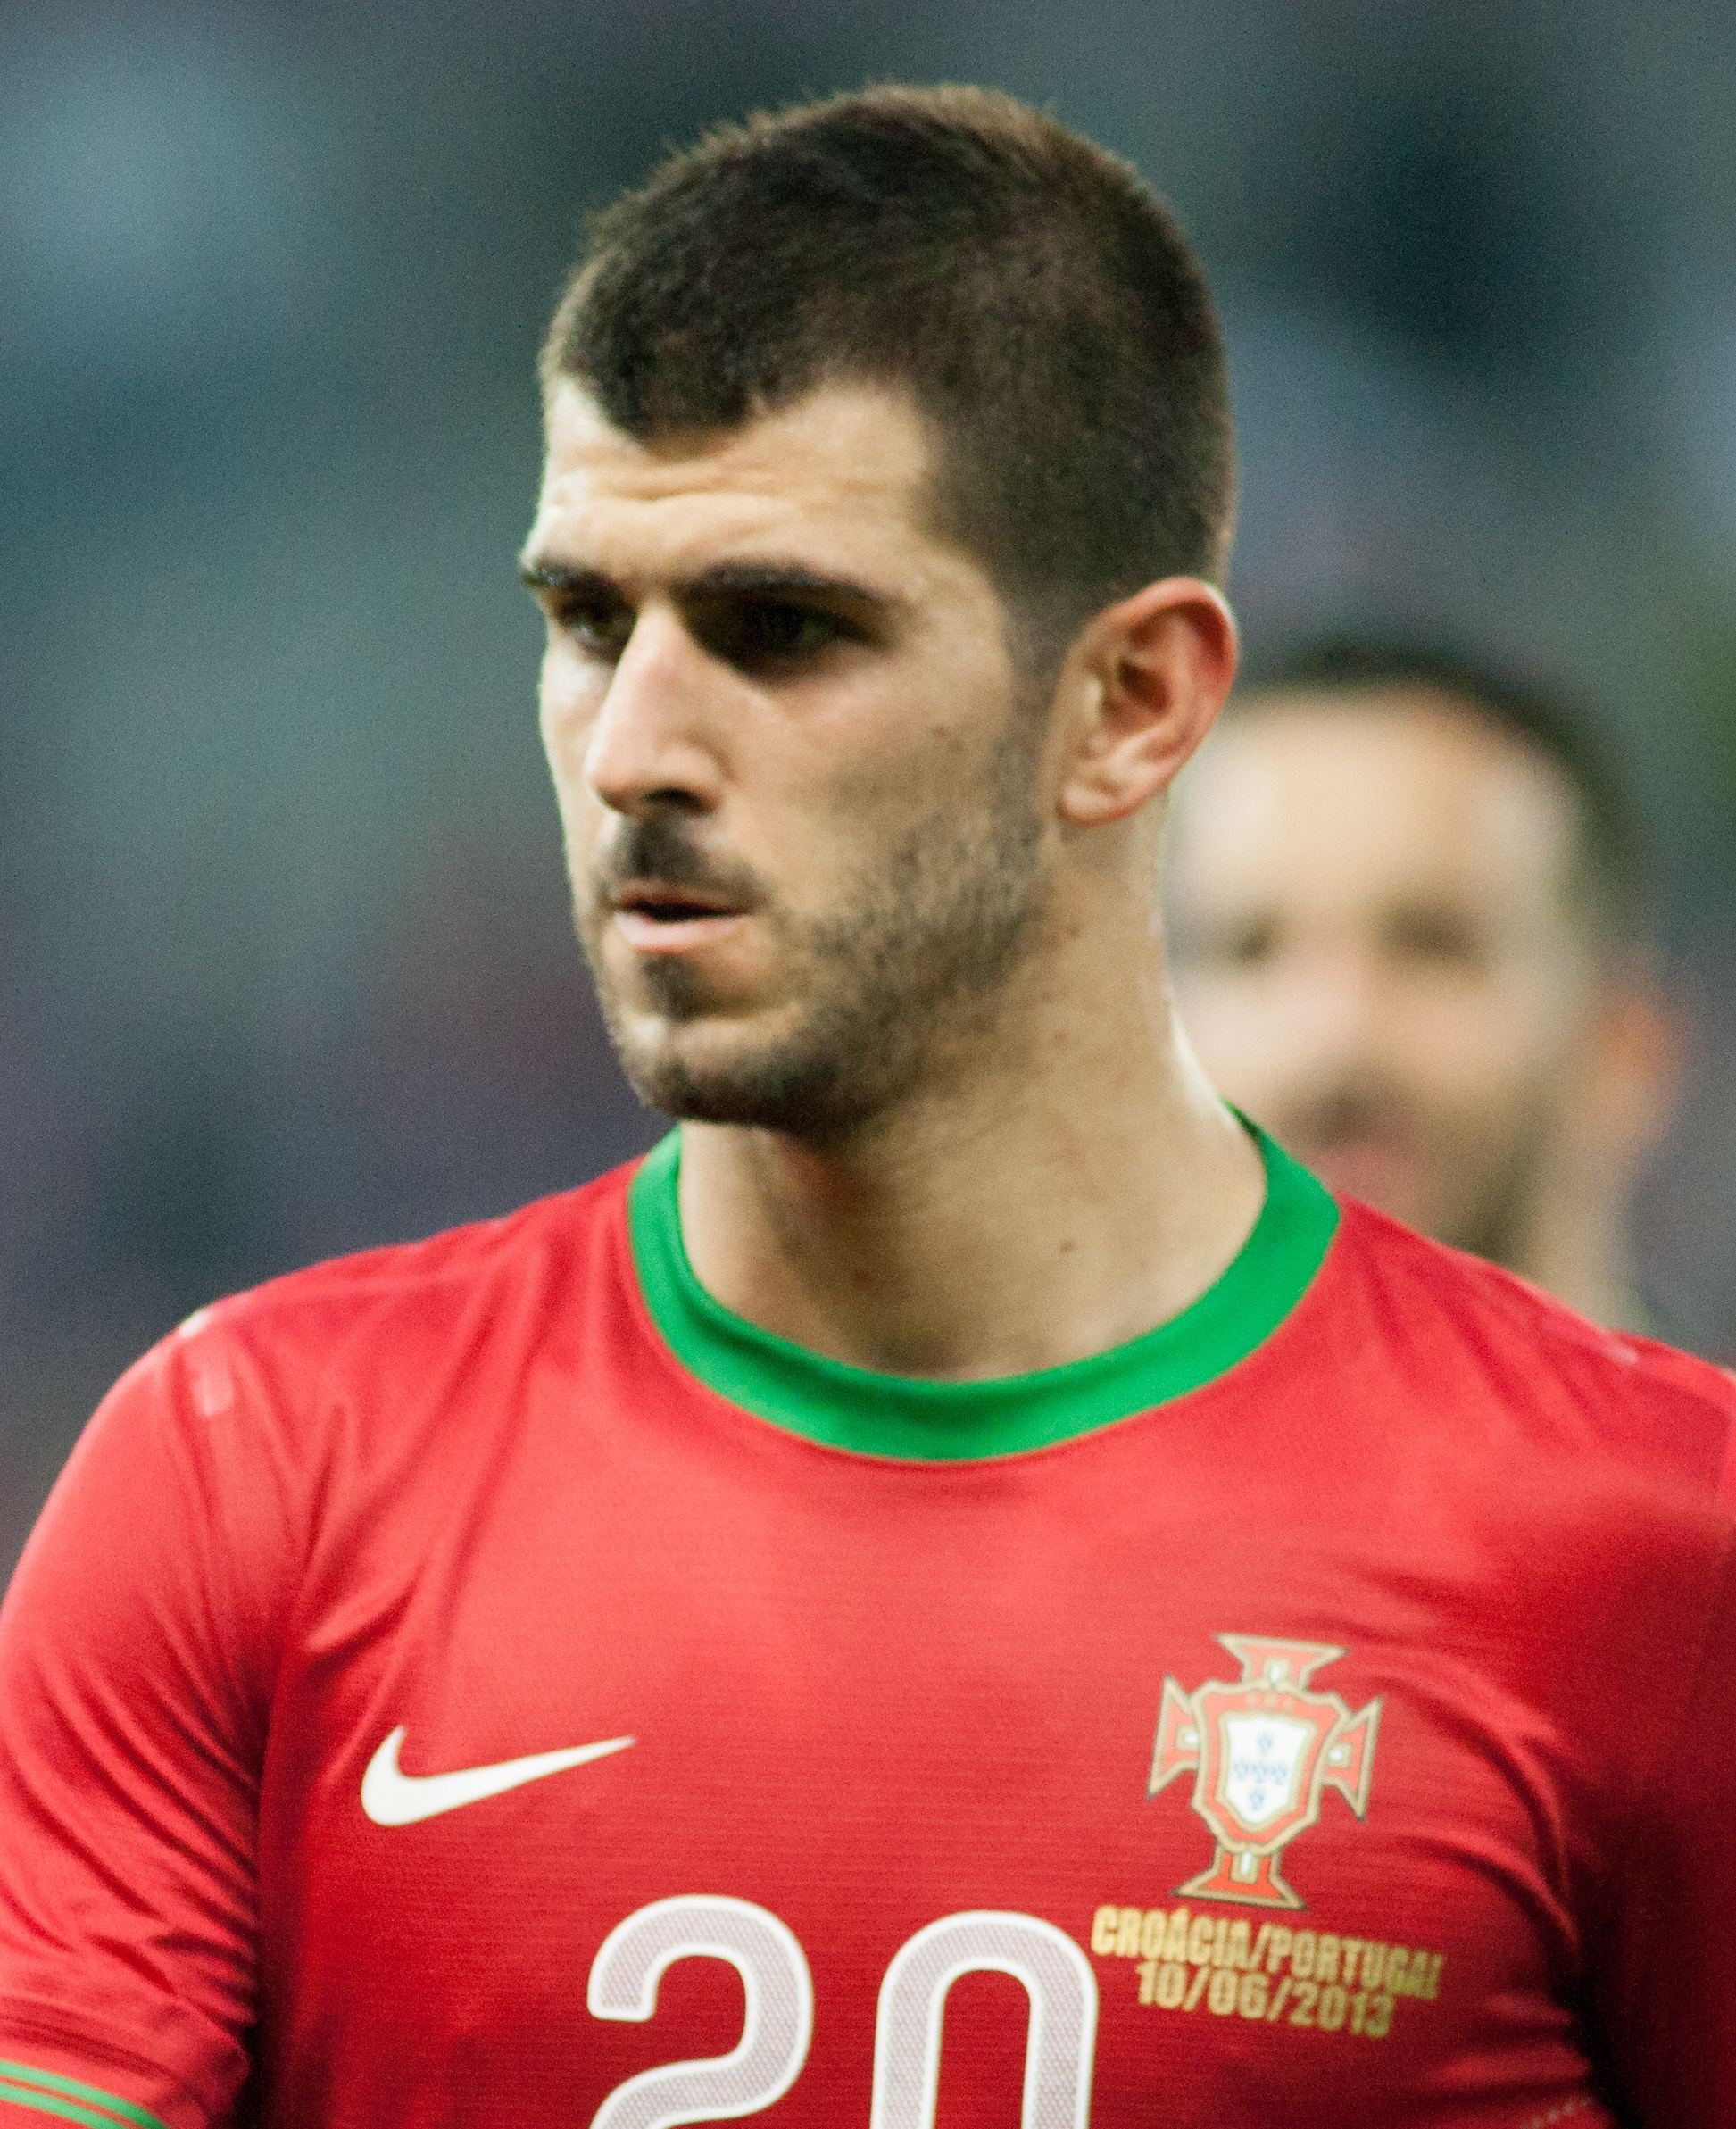 The 27-year old son of father (?) and mother(?) Nelson Oliveira in 2018 photo. Nelson Oliveira earned a  million dollar salary - leaving the net worth at 1 million in 2018